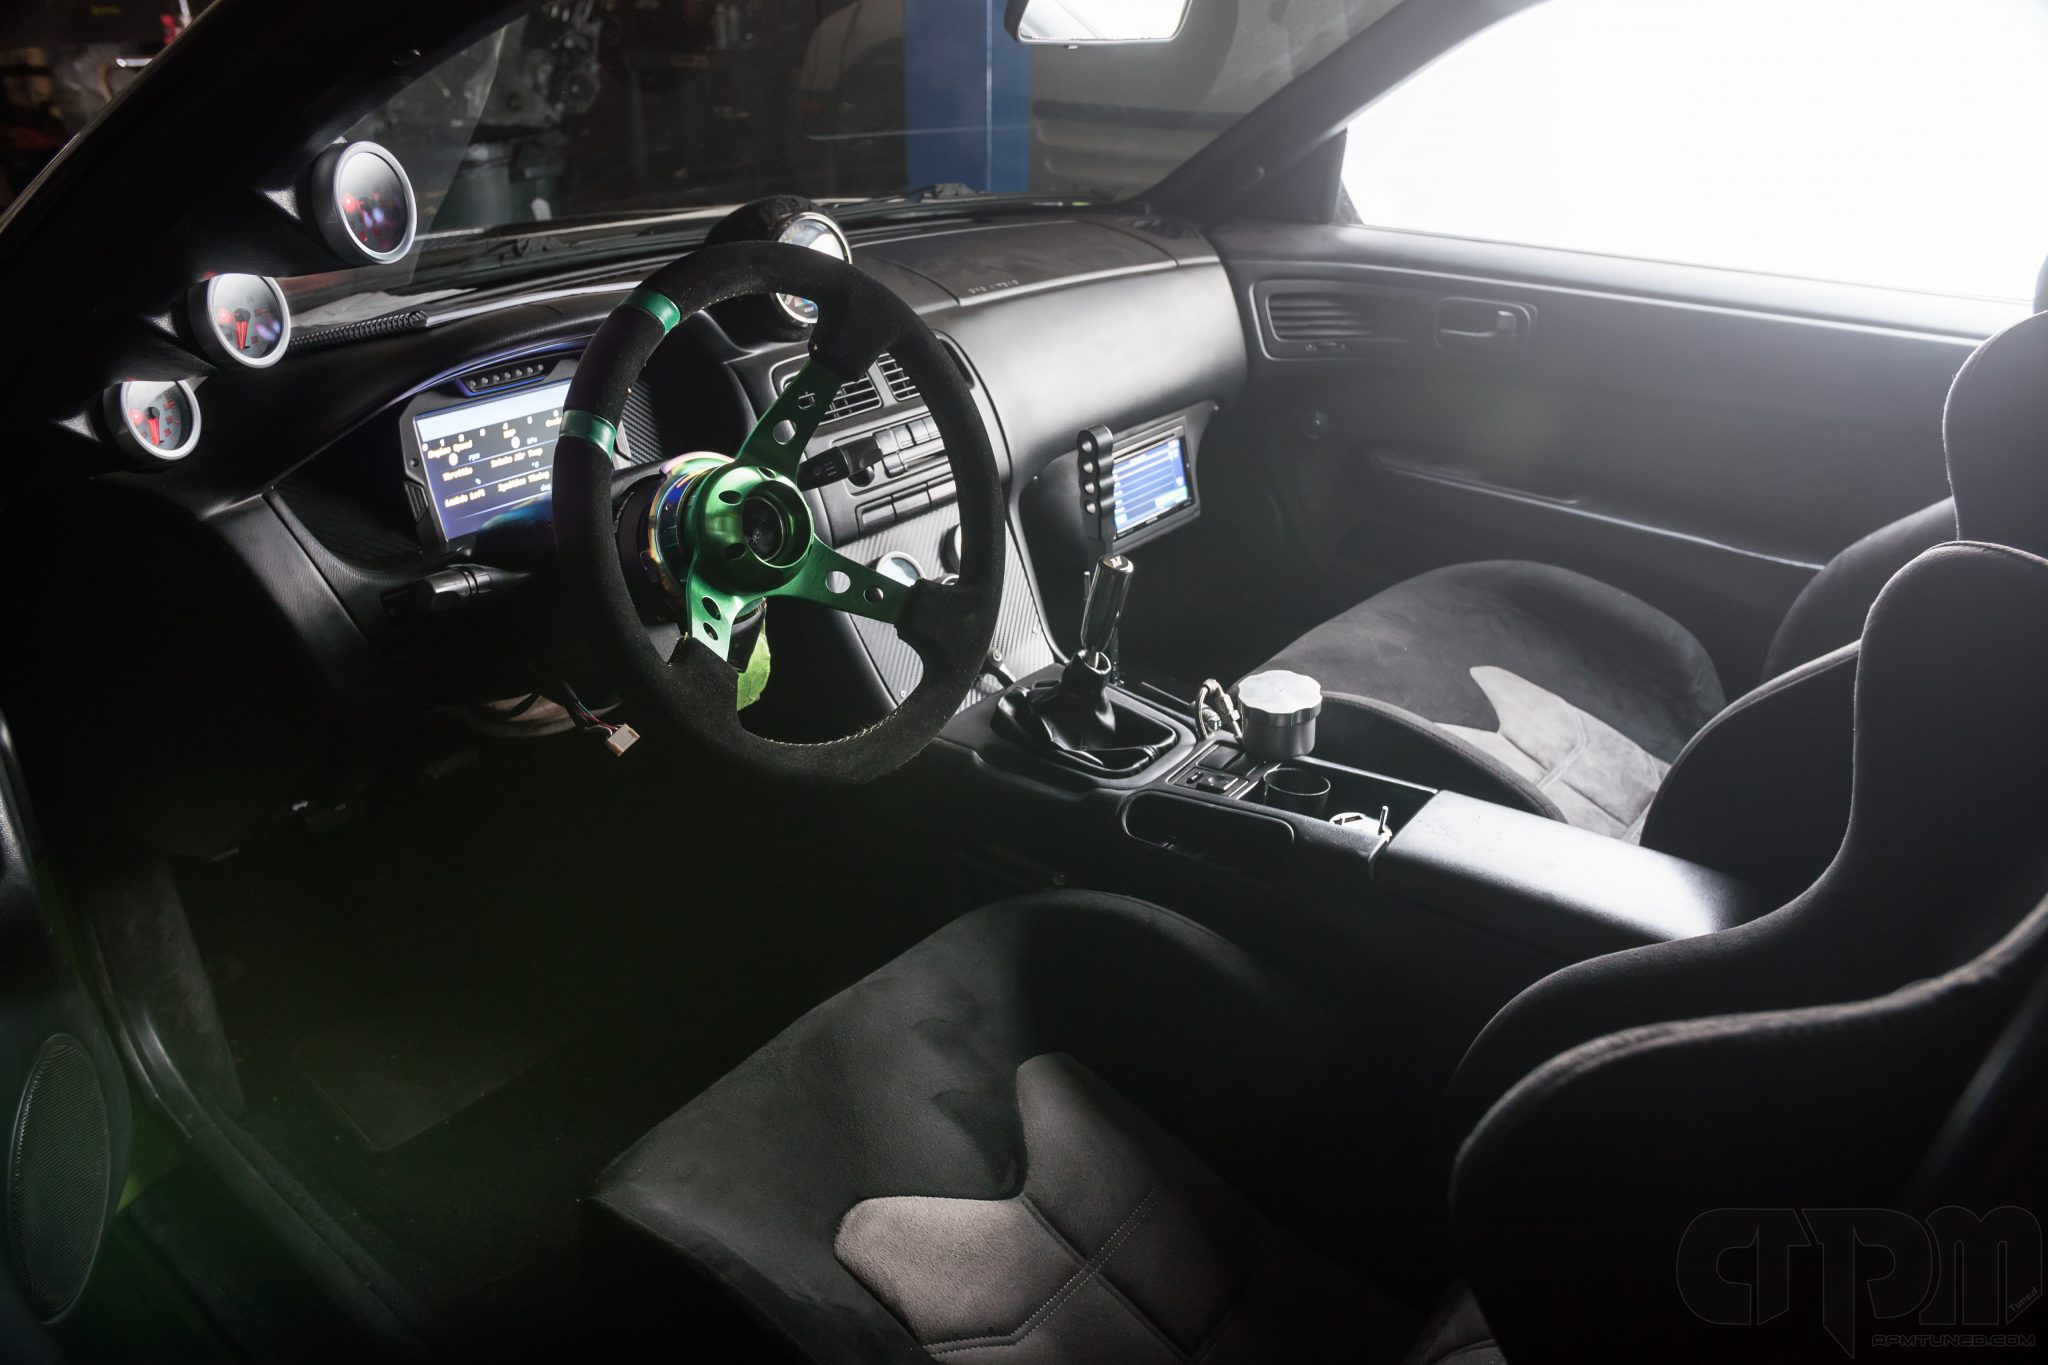 Interior of 240sx drift car with custom installed AEM display and AEM Gauges